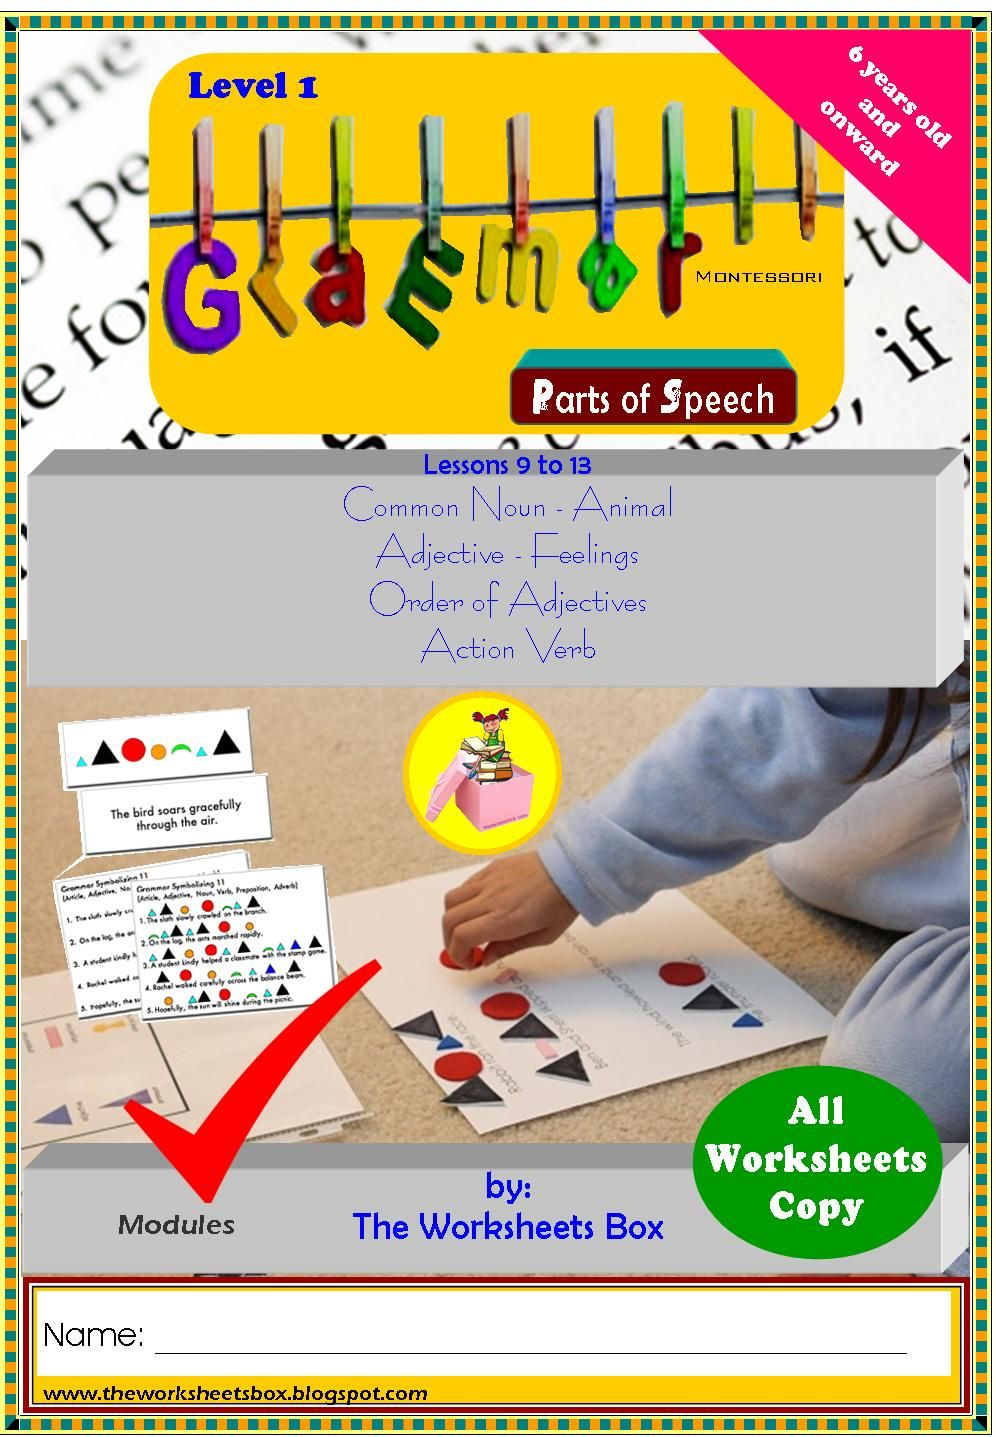 Pin by Ian on MONTESSORI GRAMMAR PLAY Reading words